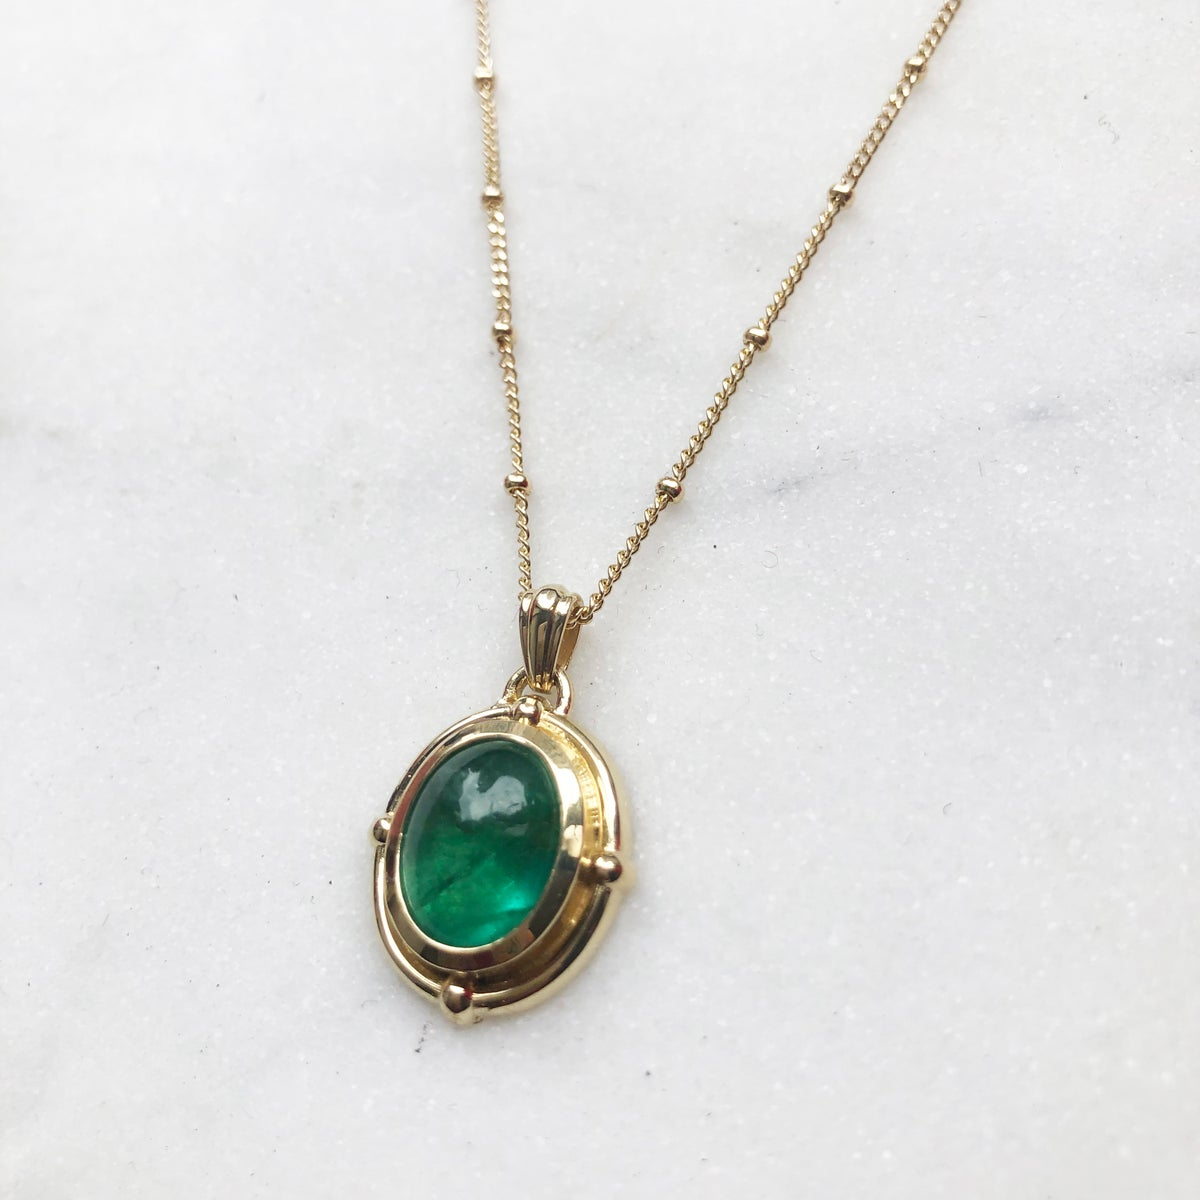 Image of Victorian oval emerald pencant necklace